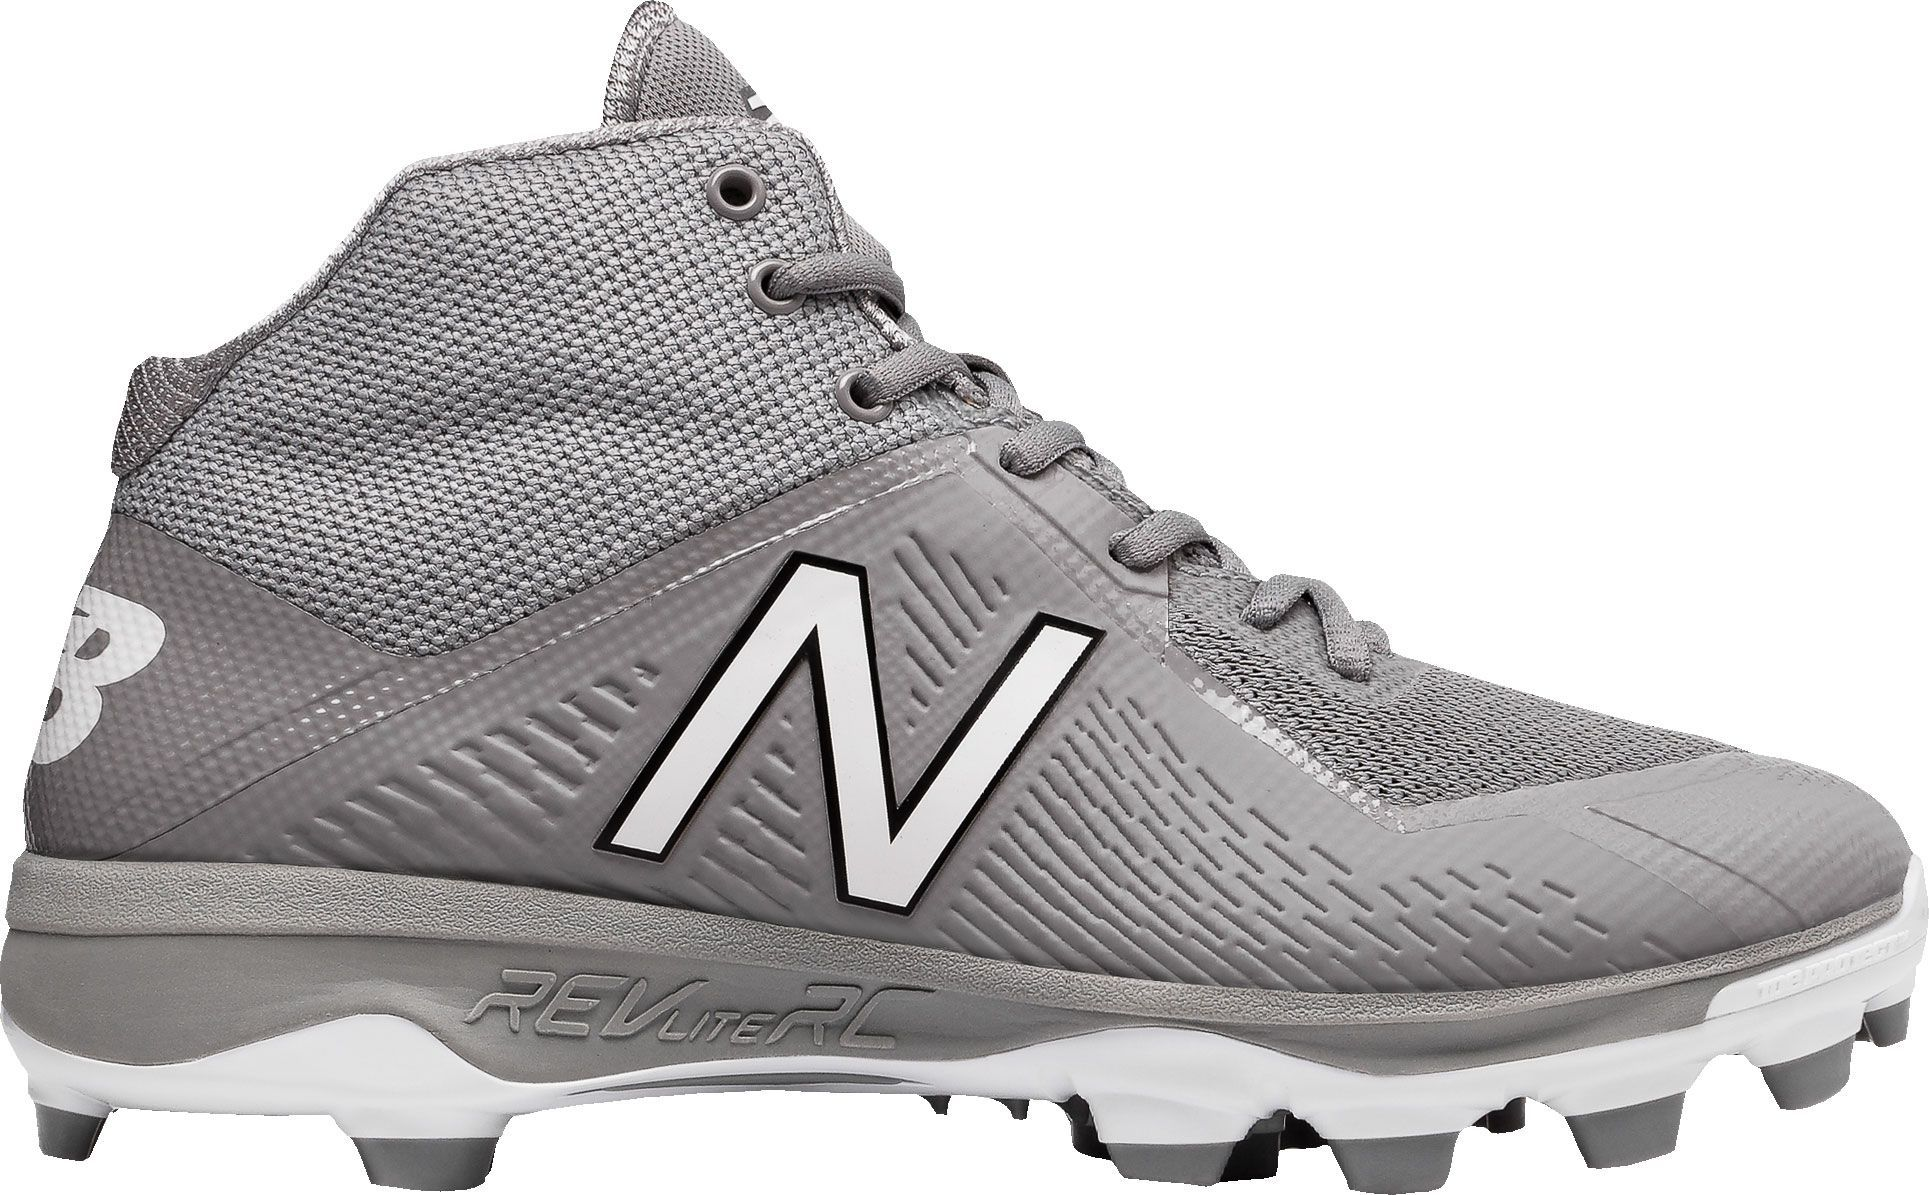 917173ed New Balance Men's 4040 V4 Mid TPU Baseball Cleats, Size: 12.0, Red ...